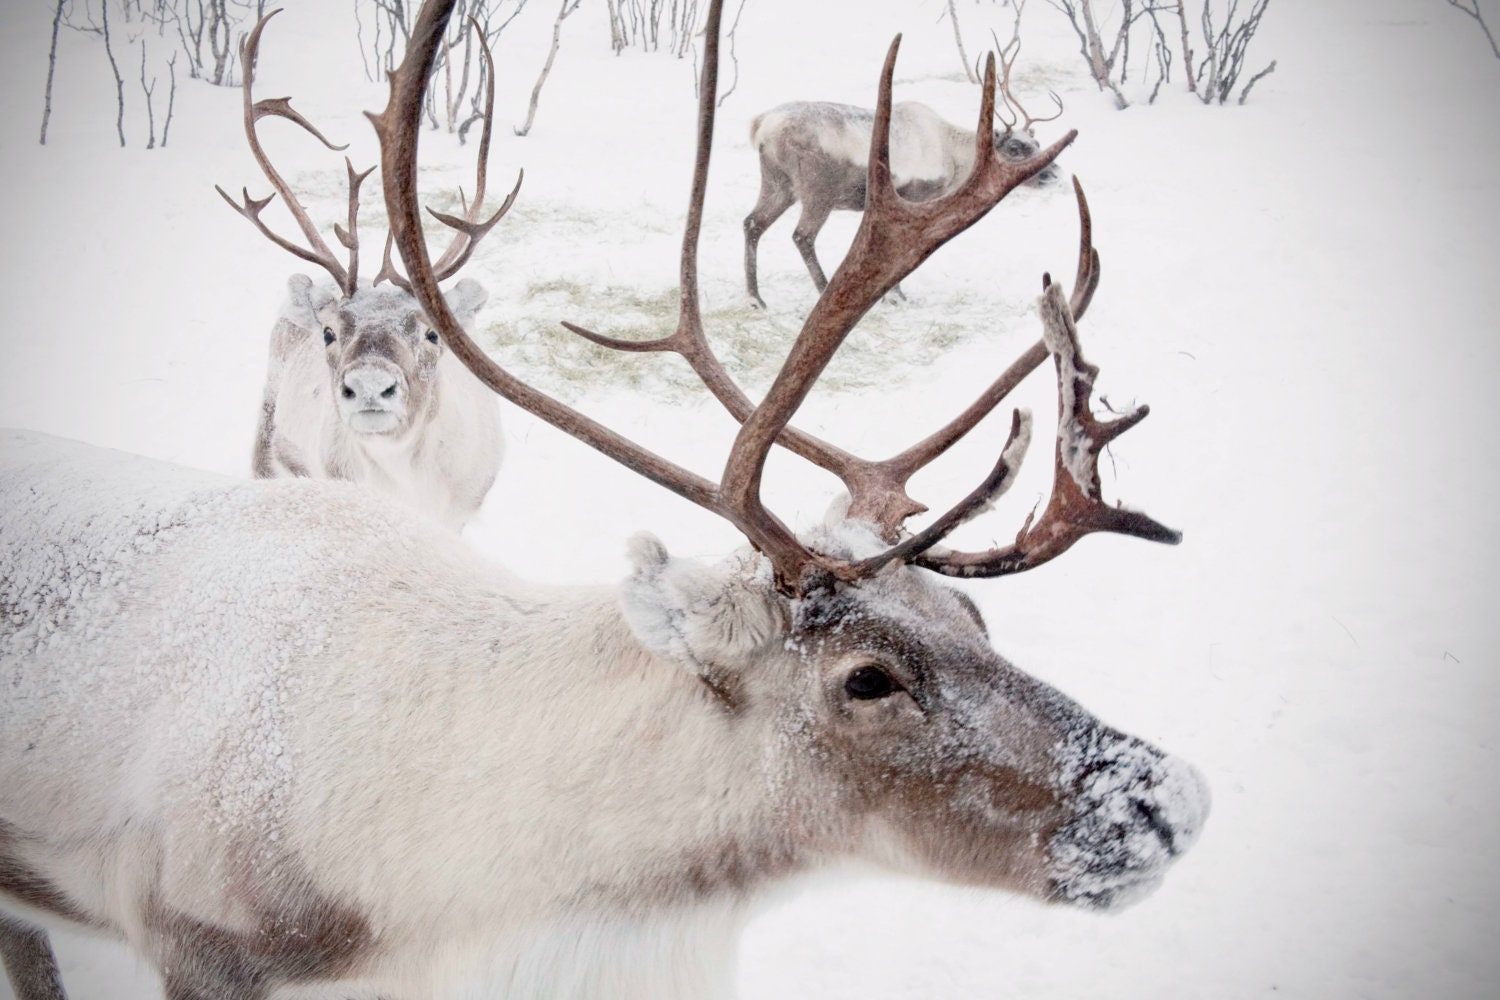 Extra Large Wall Art-Winter Reindeer Snow Photo-Caribou In